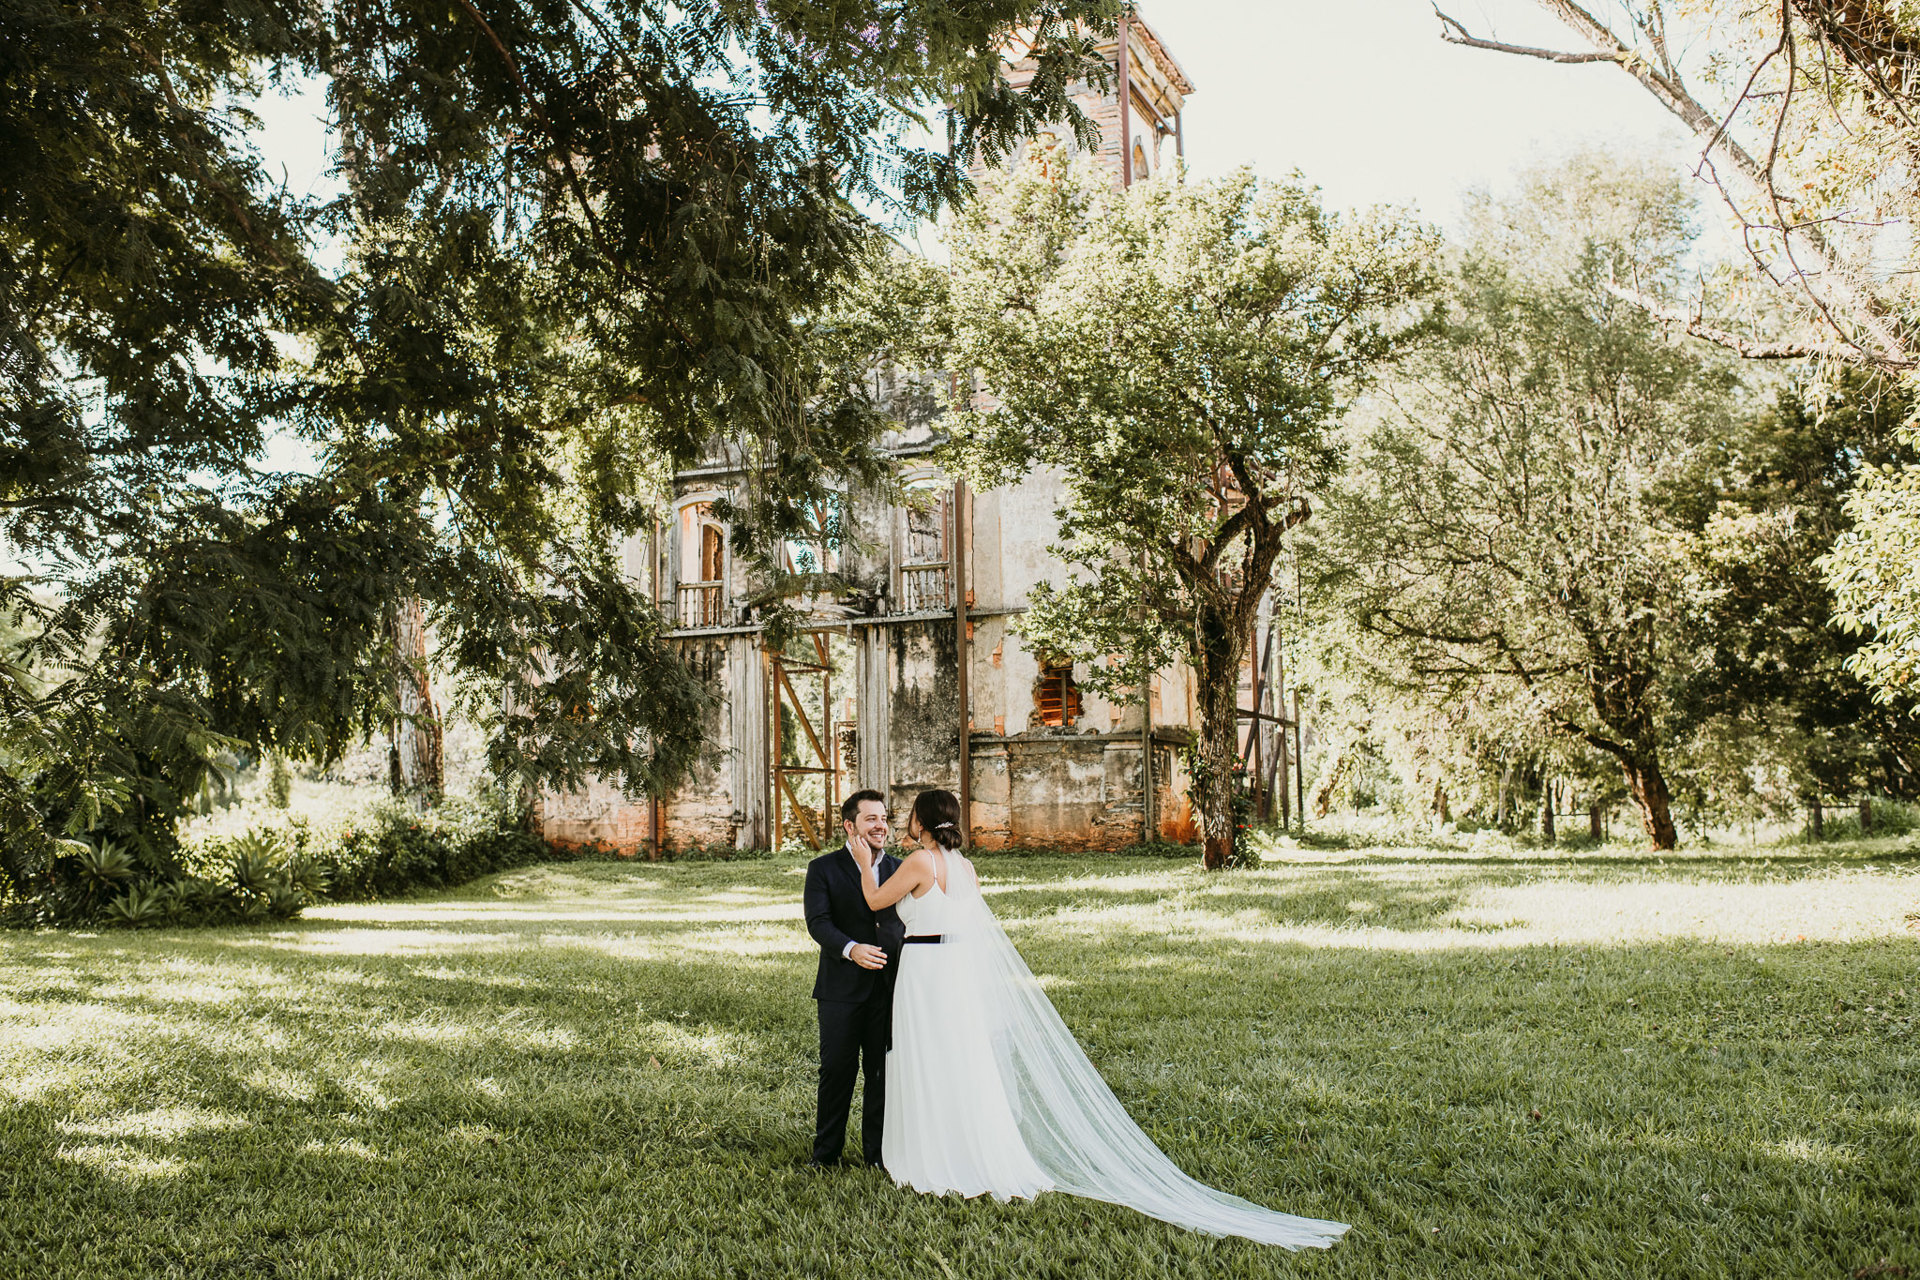 Elopement Wedding na Fazenda